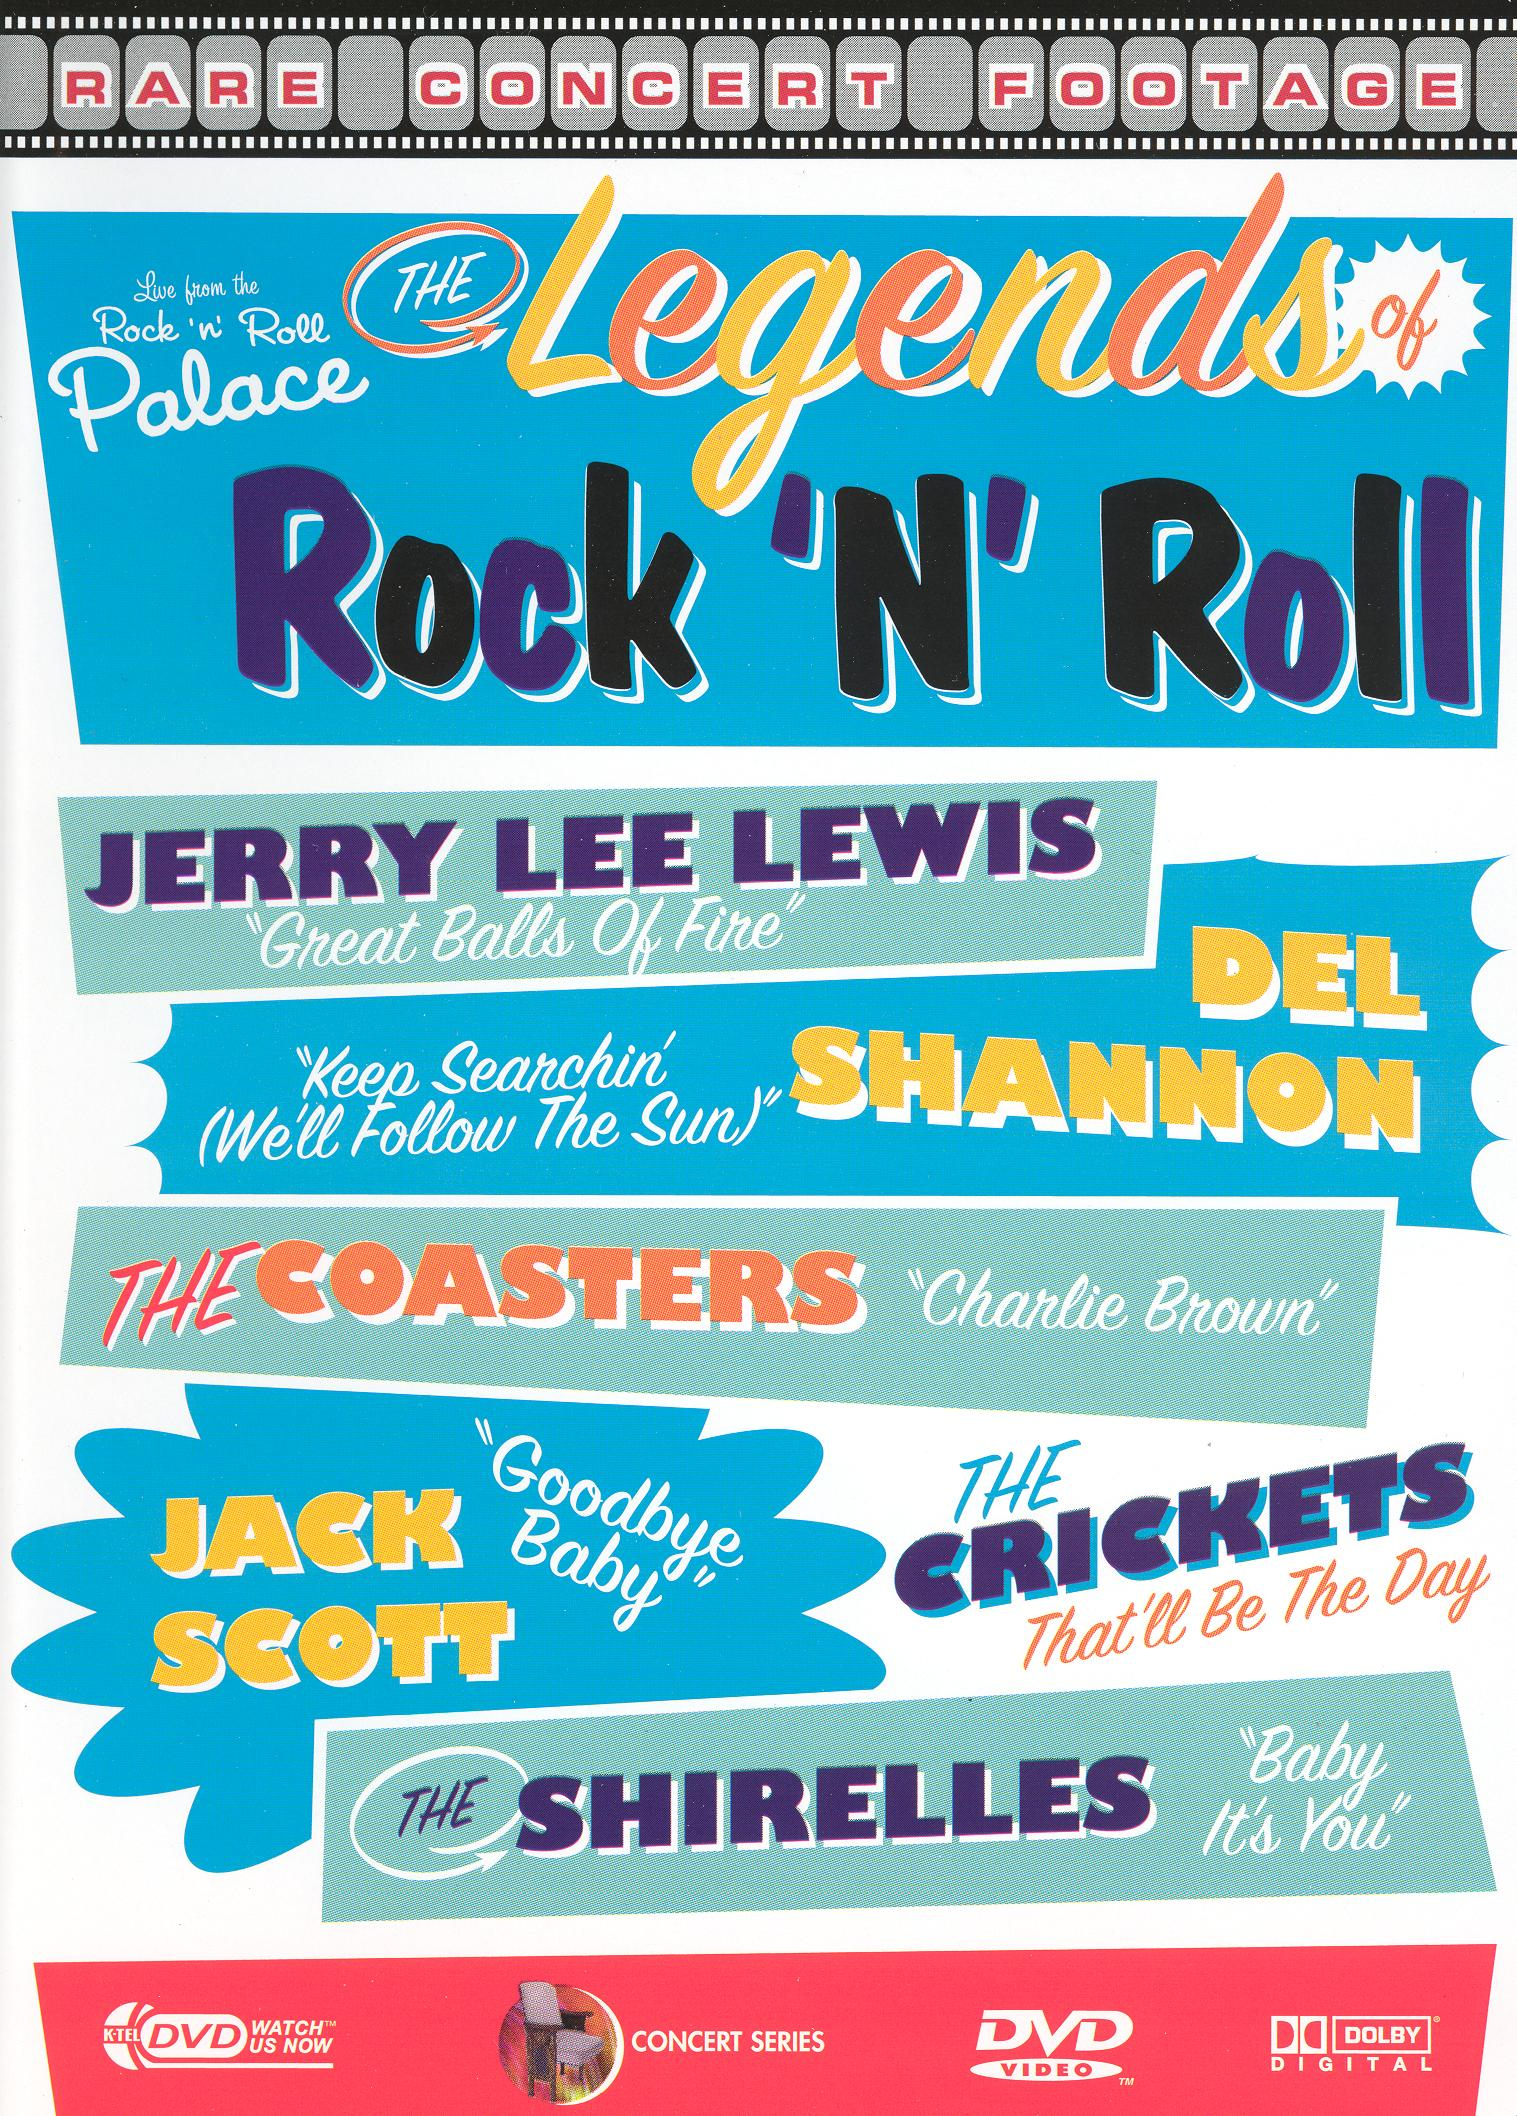 Live from the Rock 'n' Roll Palace: The Legends of Rock 'n' Roll